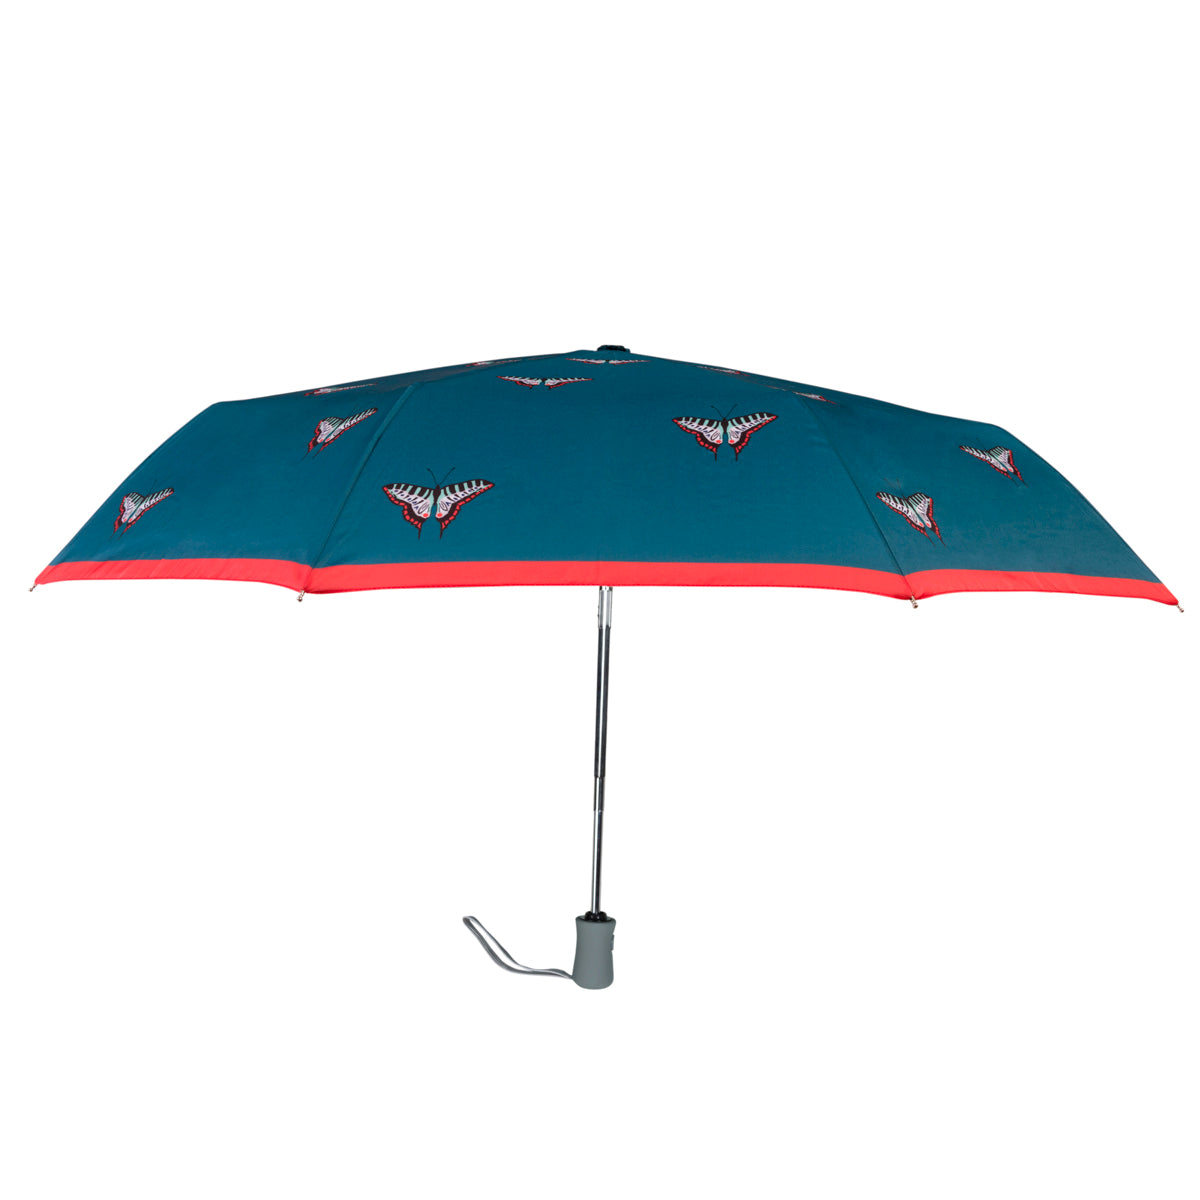 Blue Sophie Allport umbrella featuring a range of butterflies with blue outer.